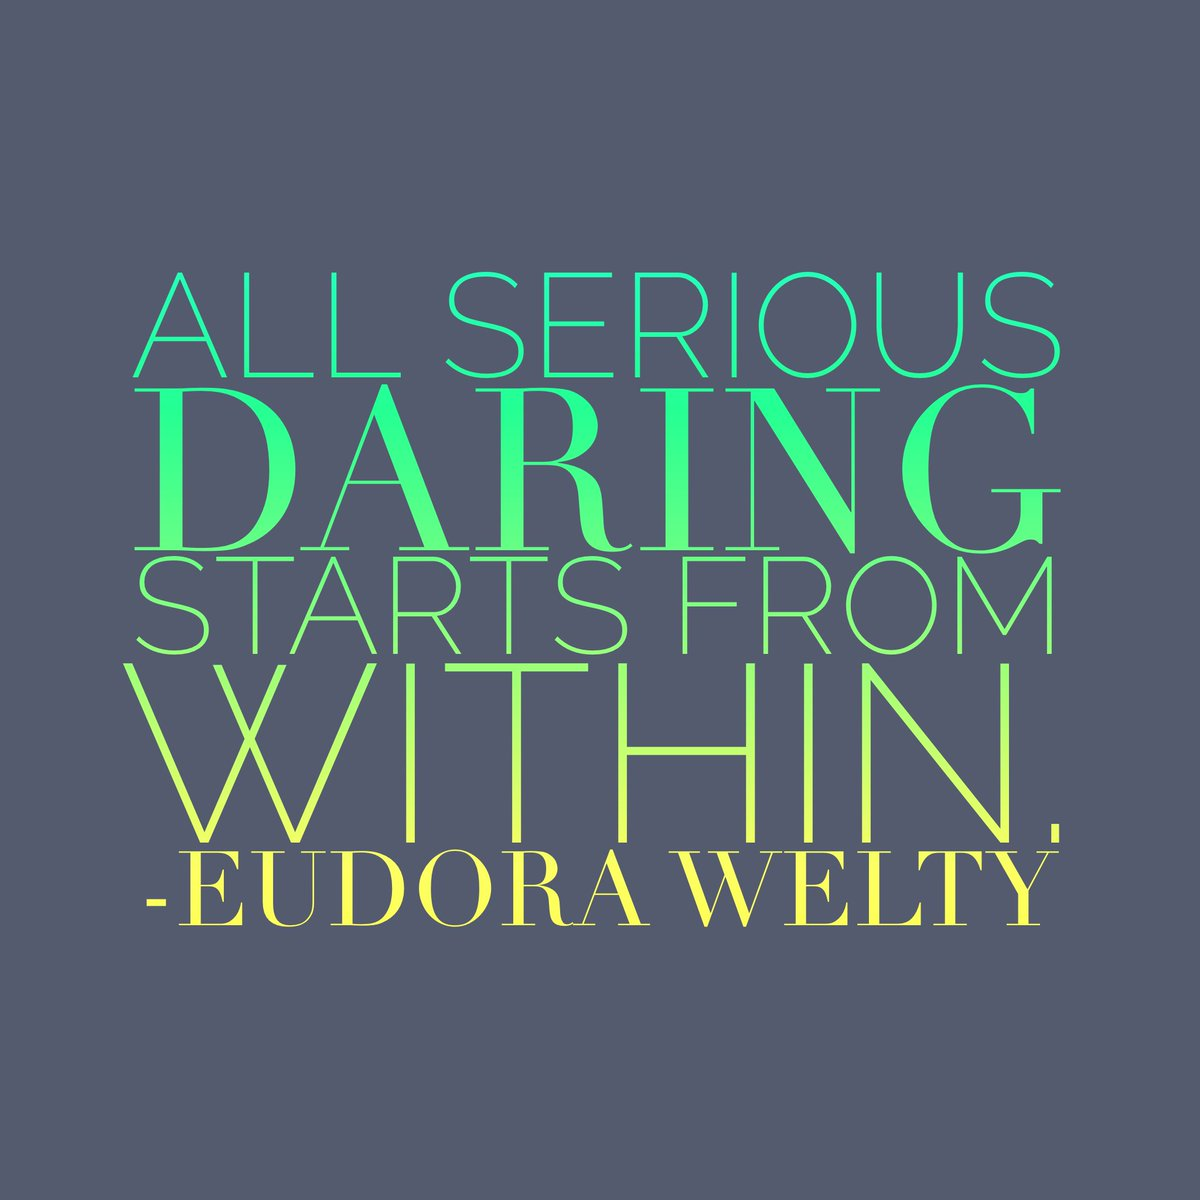 All serious daring starts from within. --Eudora Welty https://t.co/i8bniHQmej